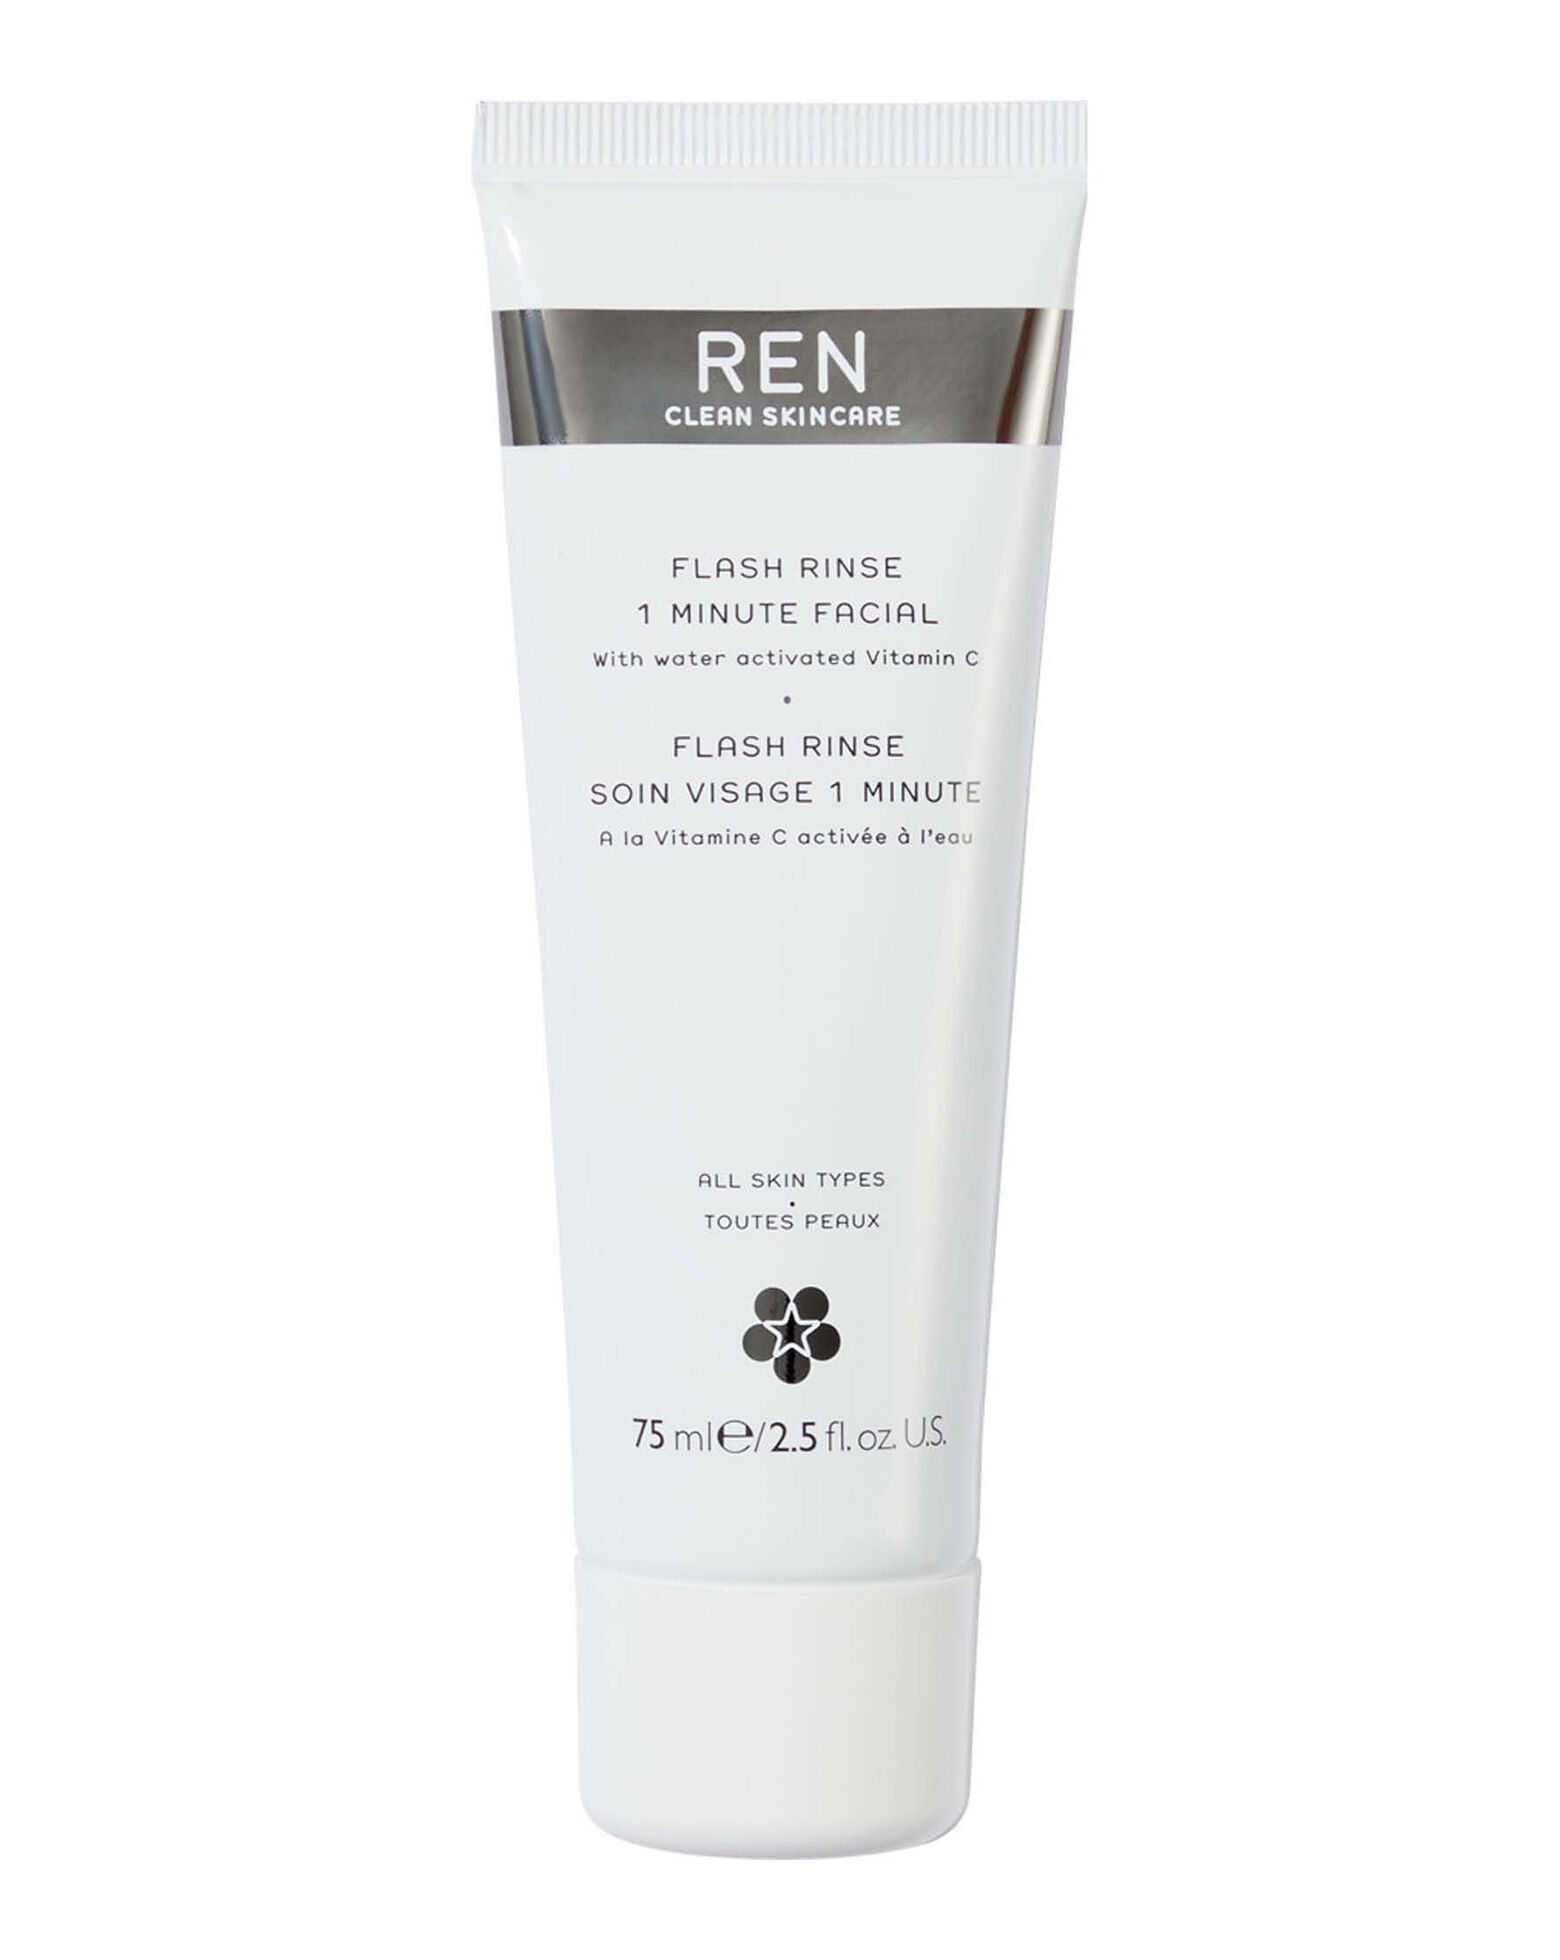 REN CLEAN SKINCARE - Flash Rinse 1 Minute Facial with Water Activated Vitamin C